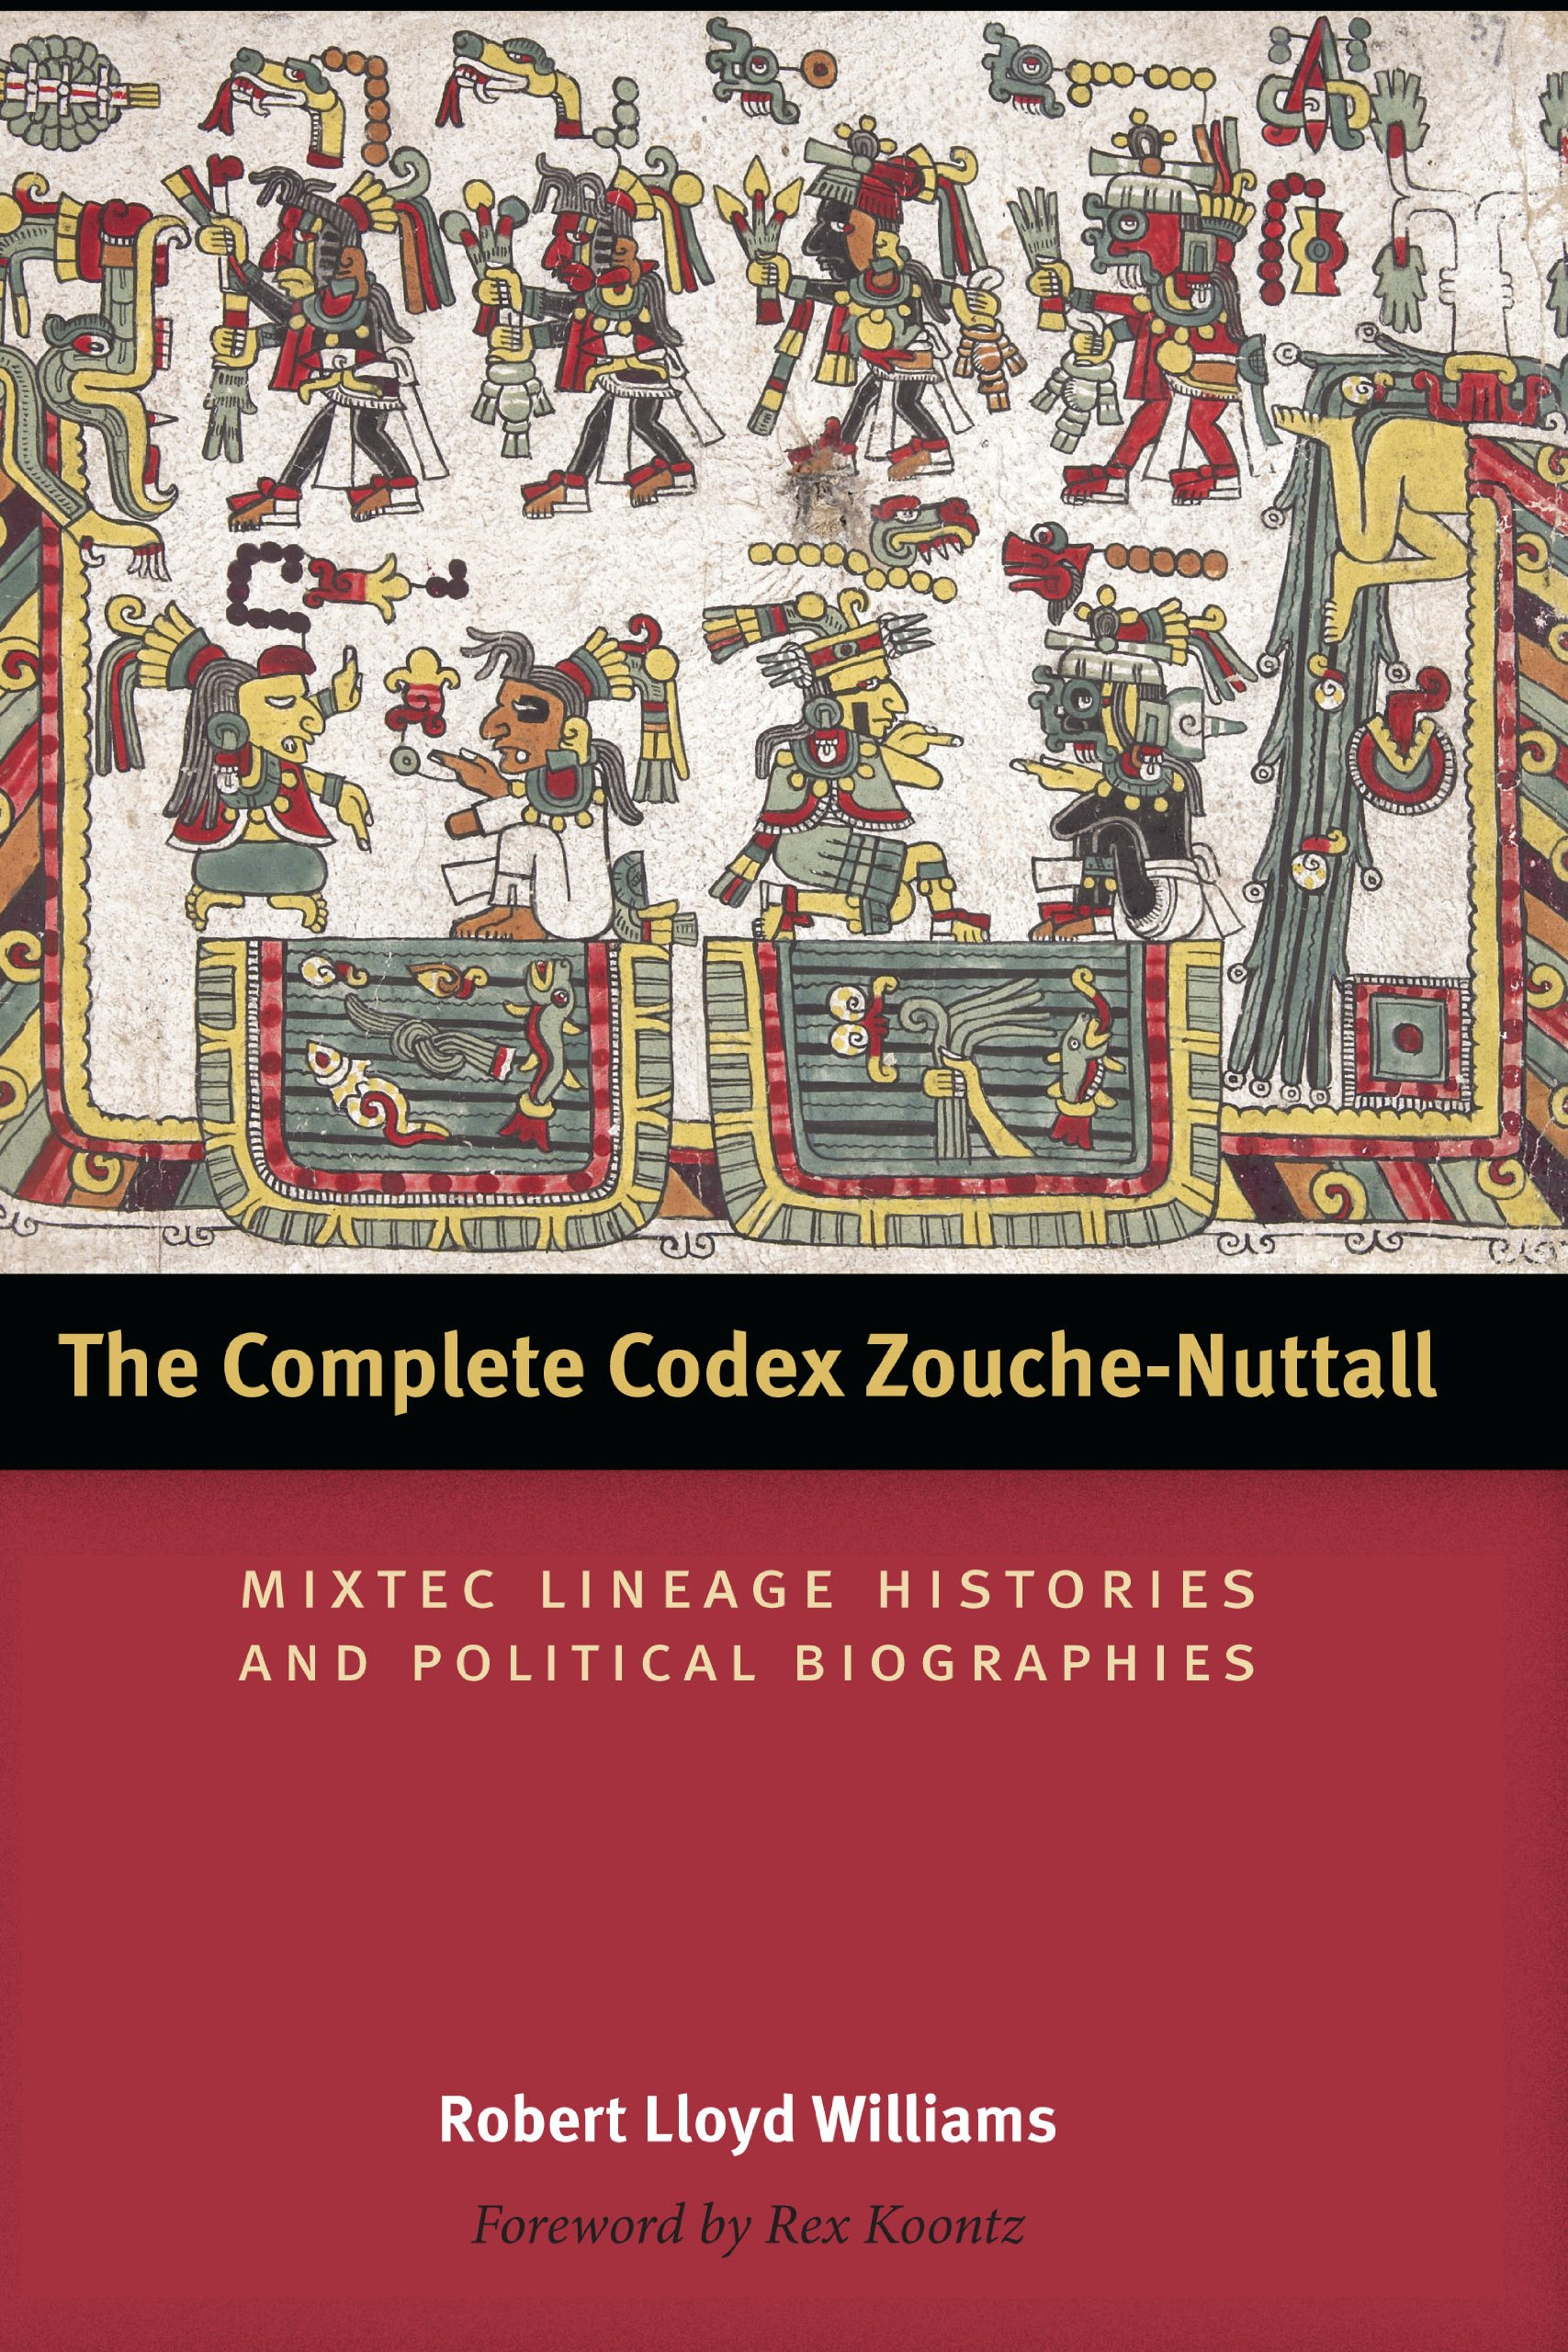 The Complete Codex Zouche-Nuttall: Mixtec Lineage Histories and Political Biographies (The Linda Schele Series in Maya and Pre-Columbian Studies)